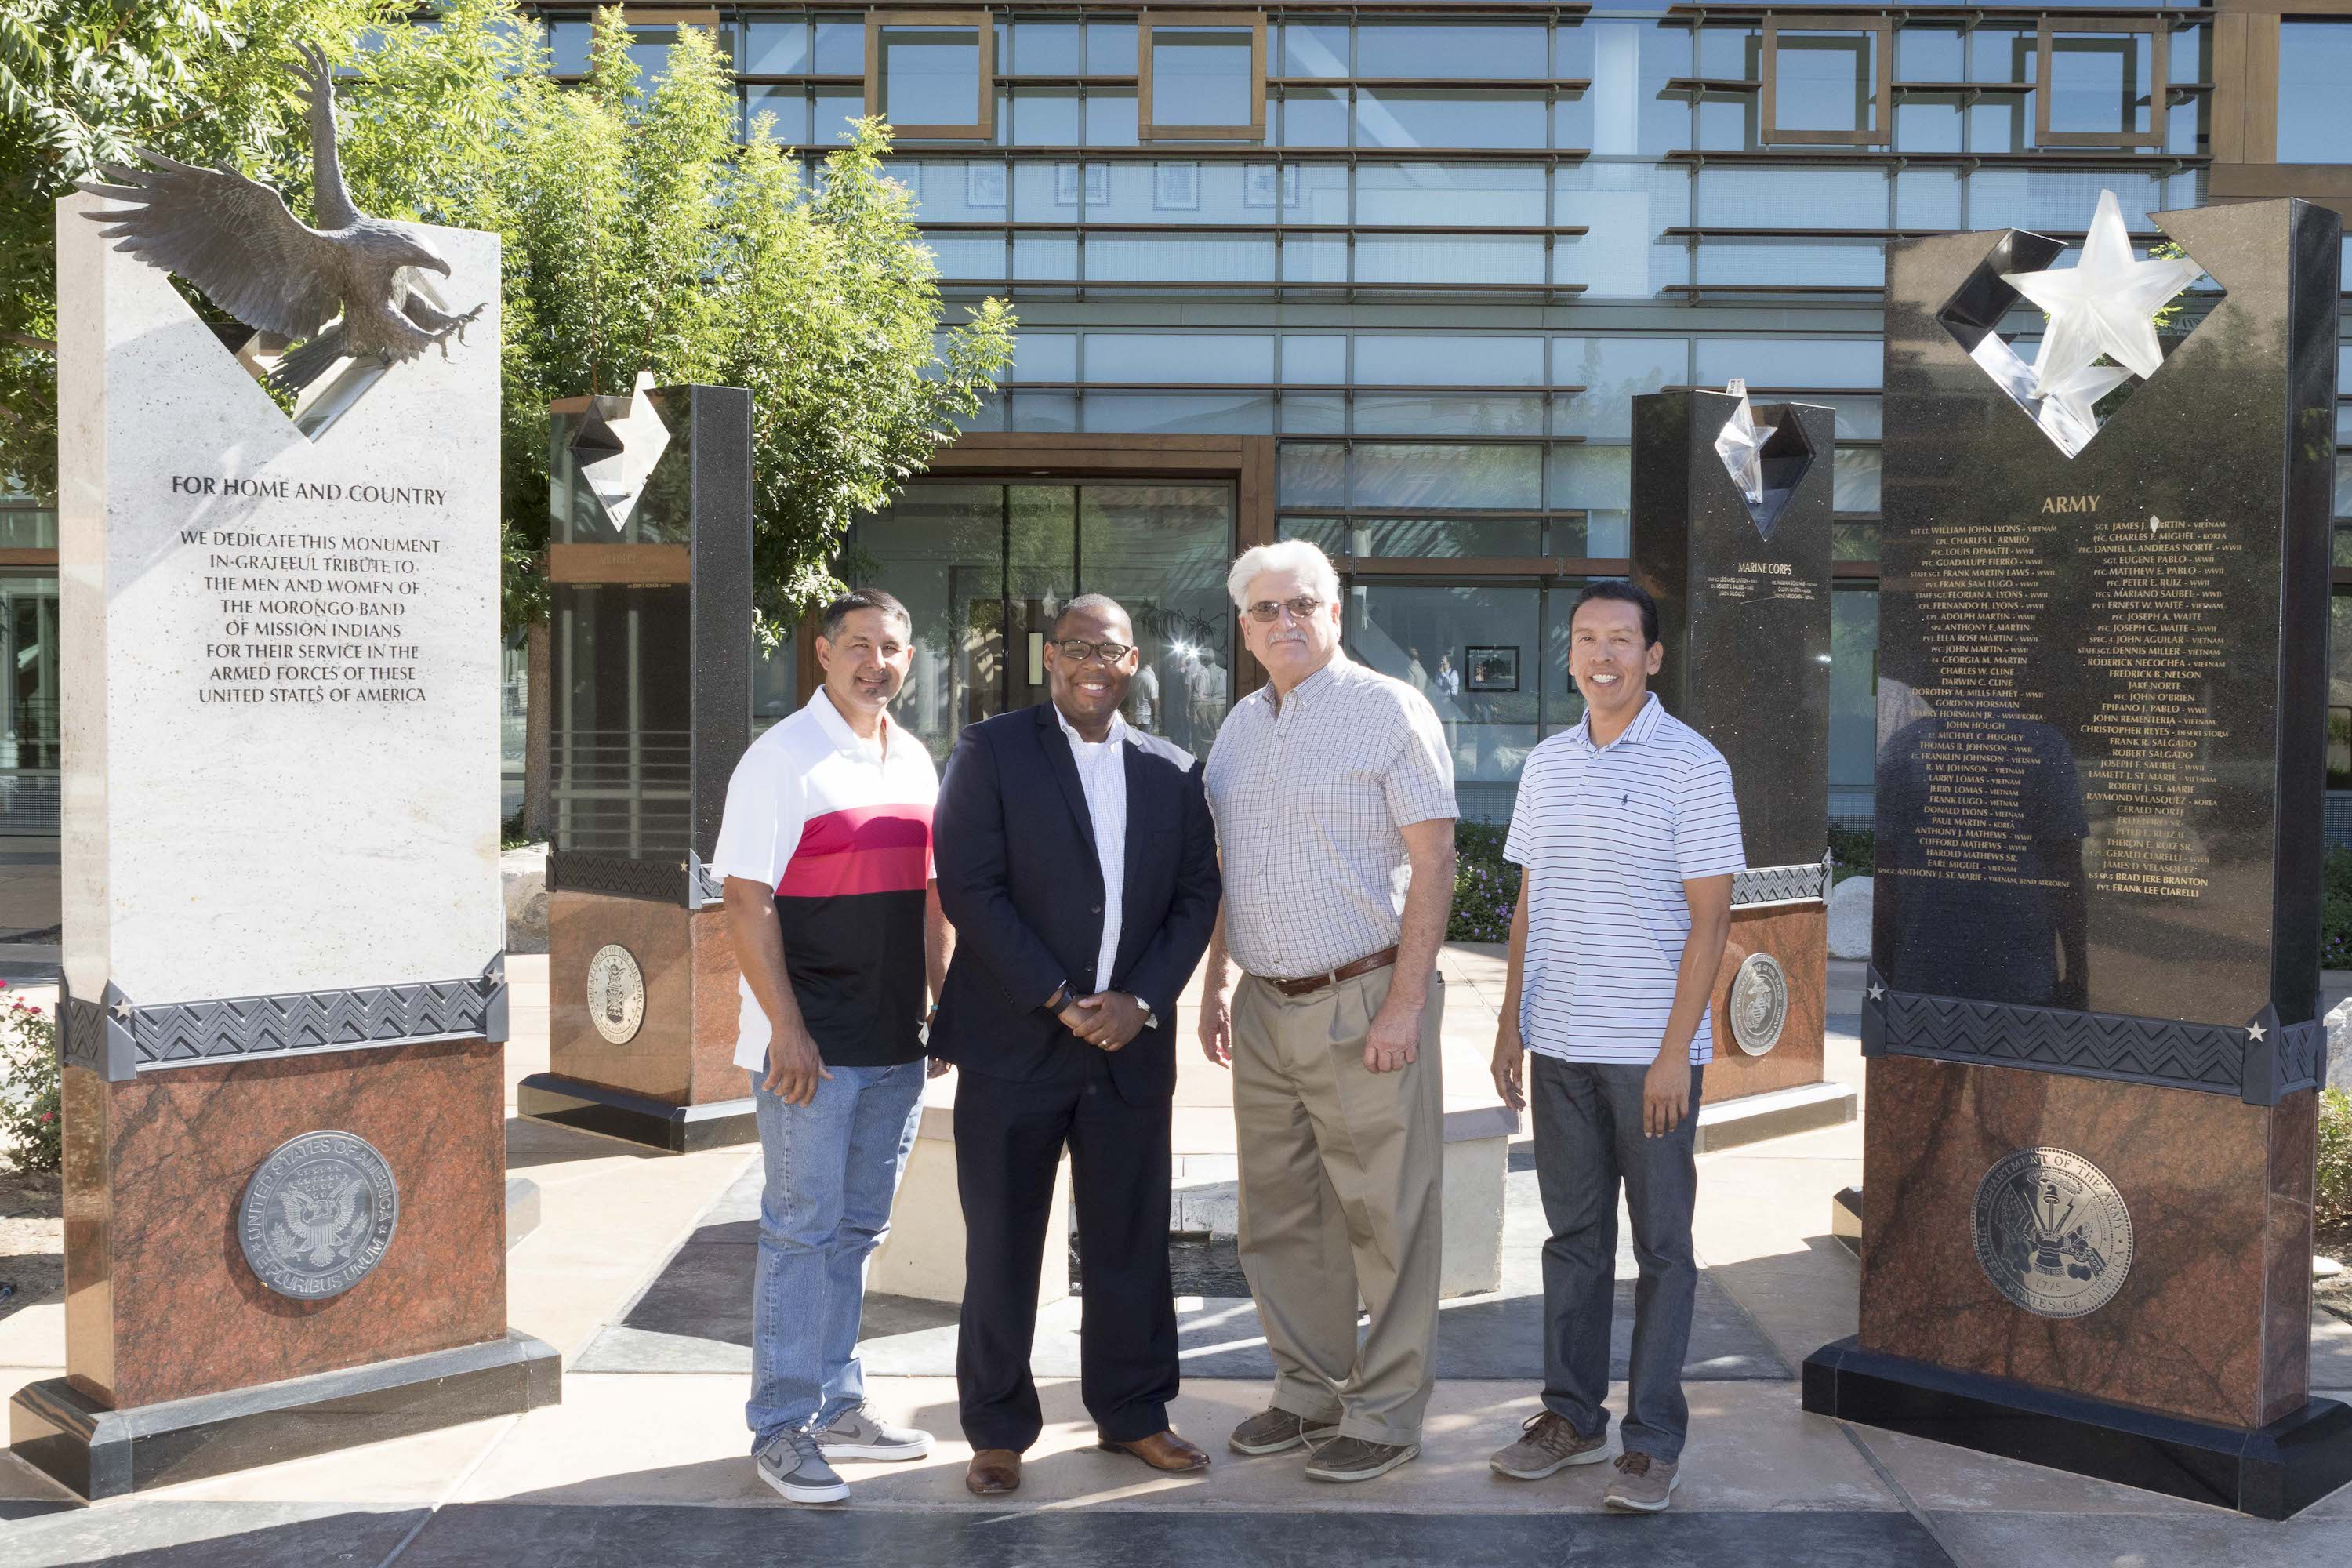 Morongo Band enters into agreement to help tribal veterans secure home loans